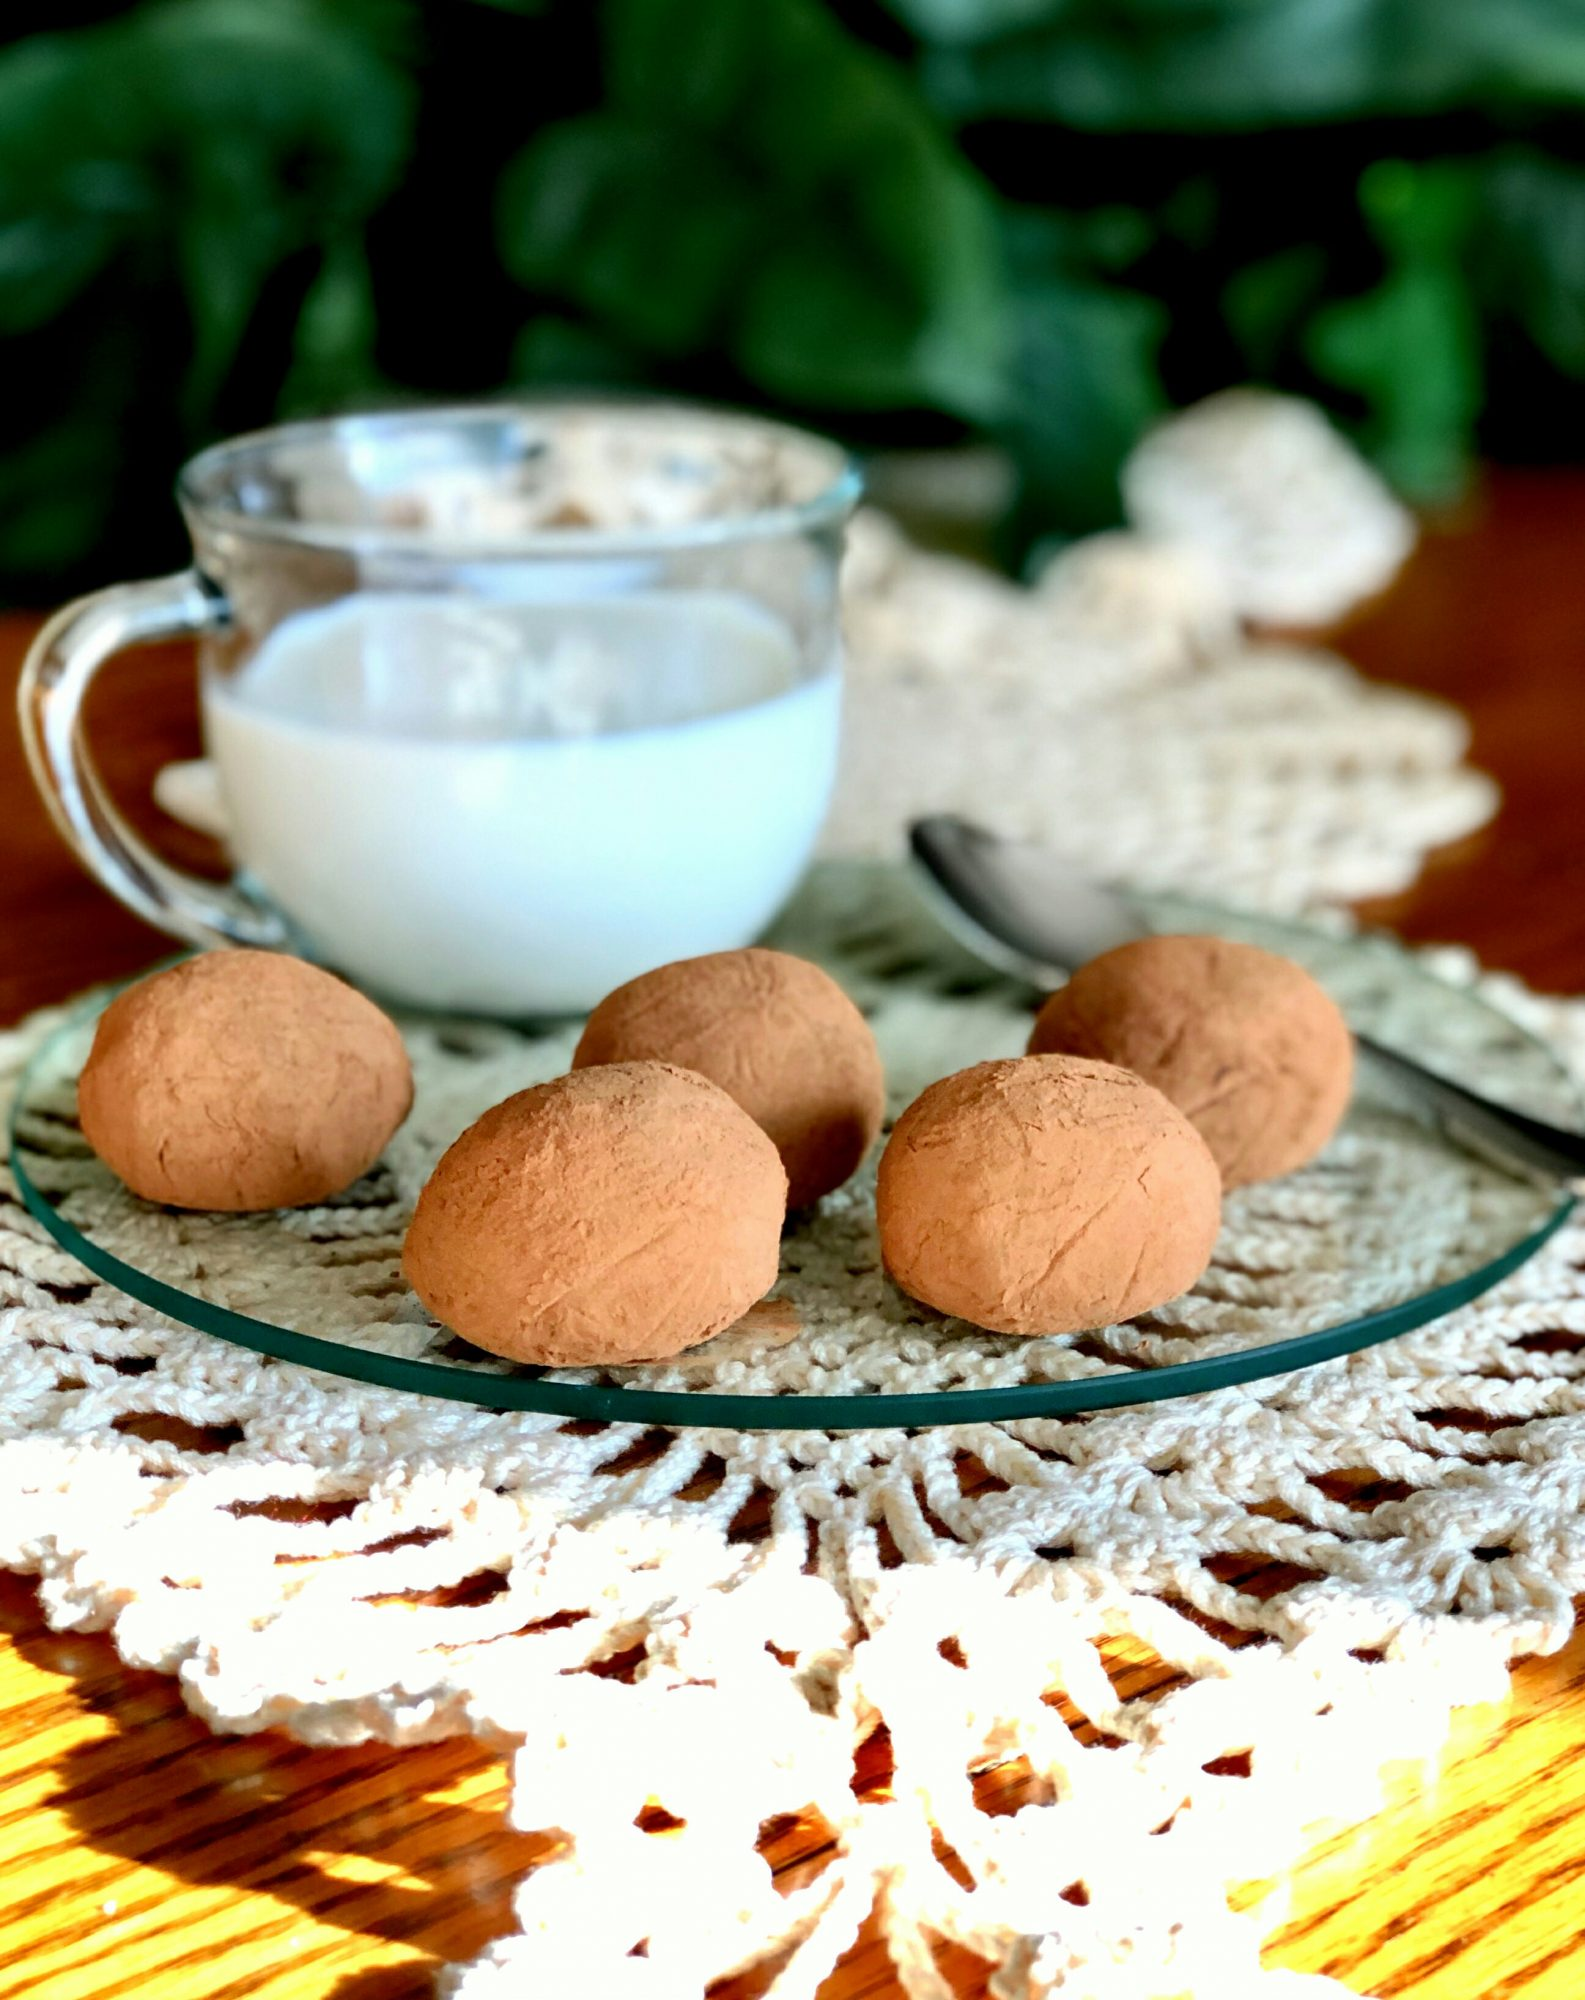 chocolate truffles on crystal glass plate with cup of milk